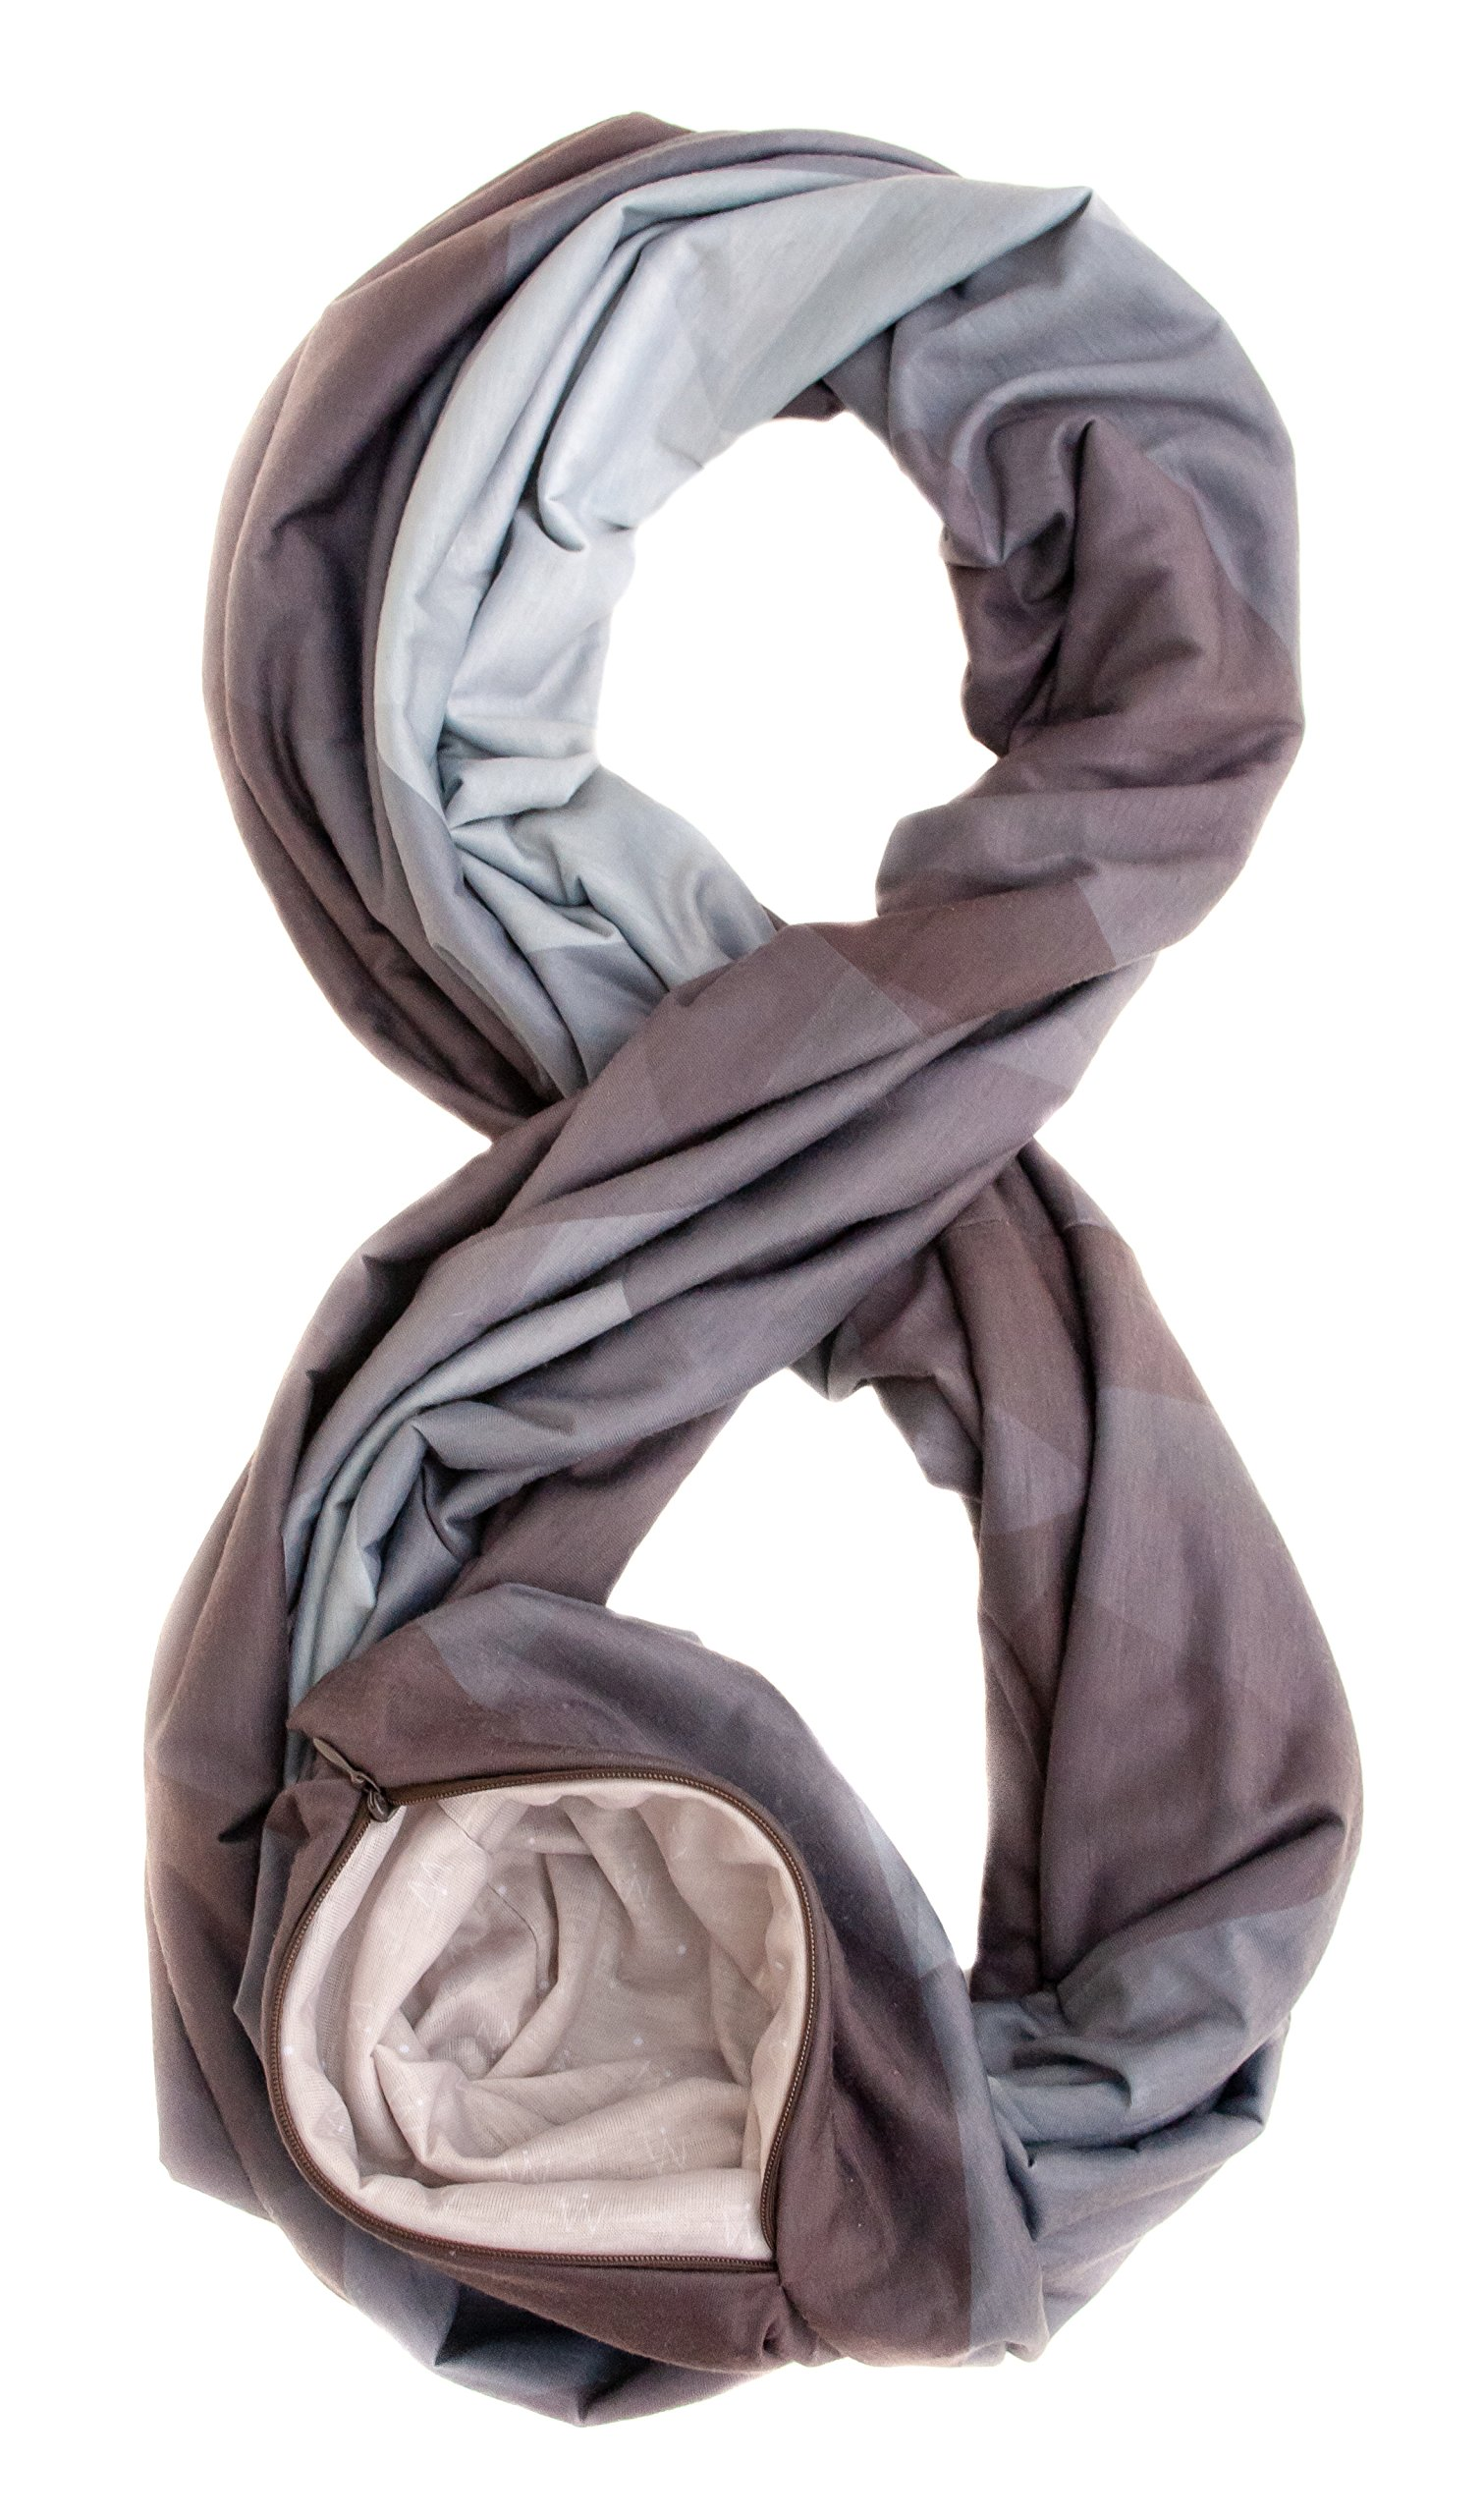 Travel Scarf with Secret Hidden Zipper-Pocket - Infinity Scarf by Waypoint Goods in Oslo style by WAYPOINT GOODS